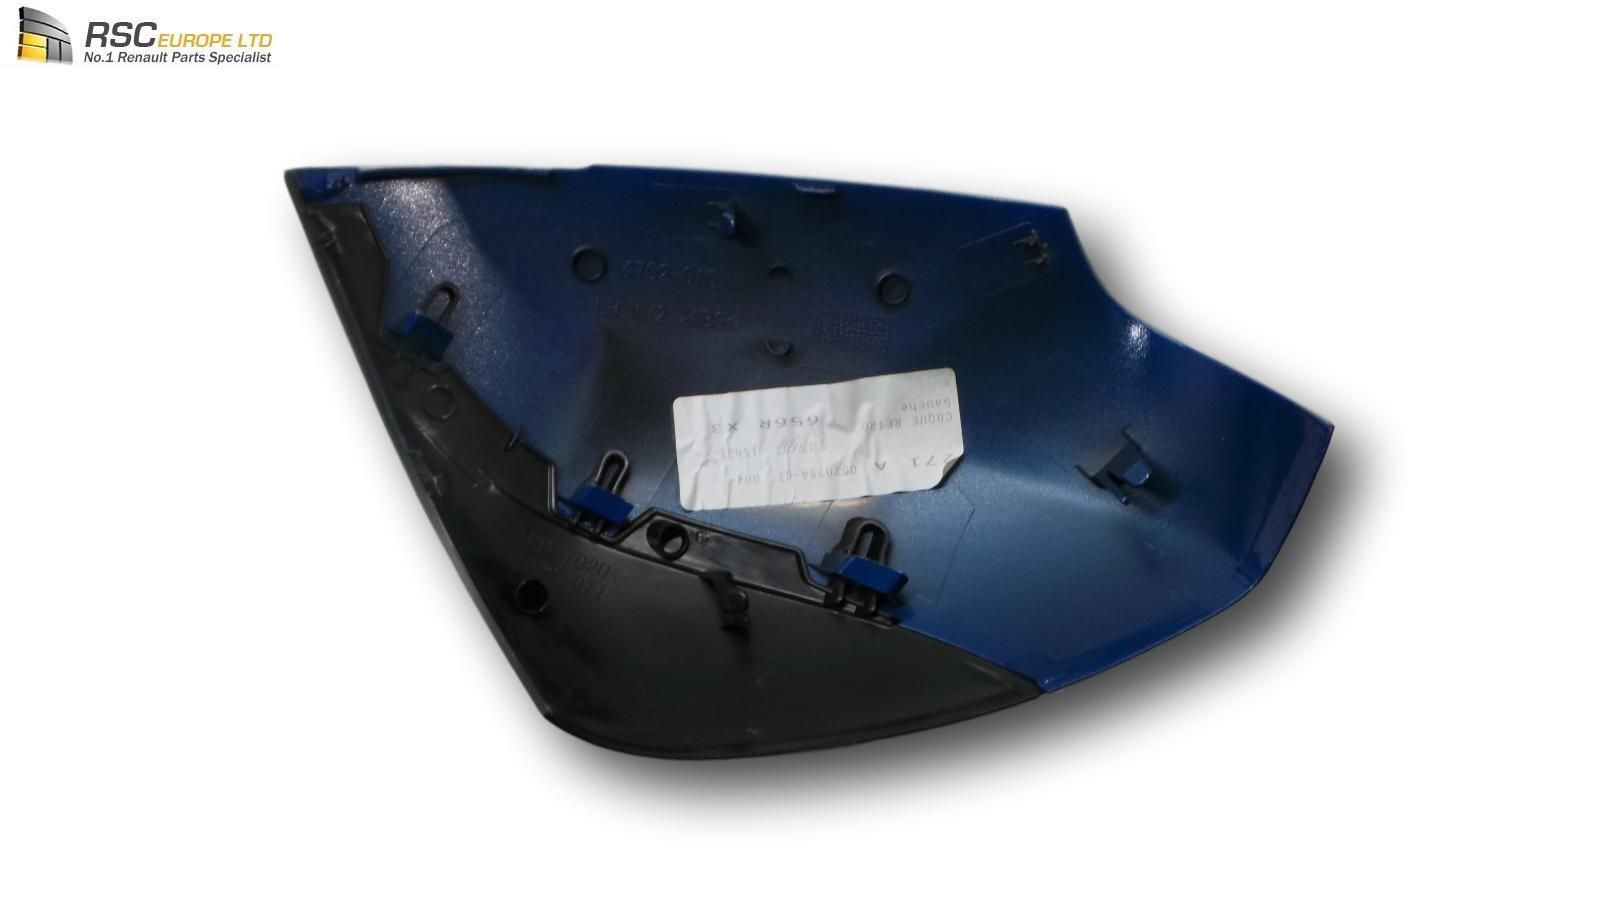 renault scenic 3 iii left mirror cover cap shell in blue. Black Bedroom Furniture Sets. Home Design Ideas